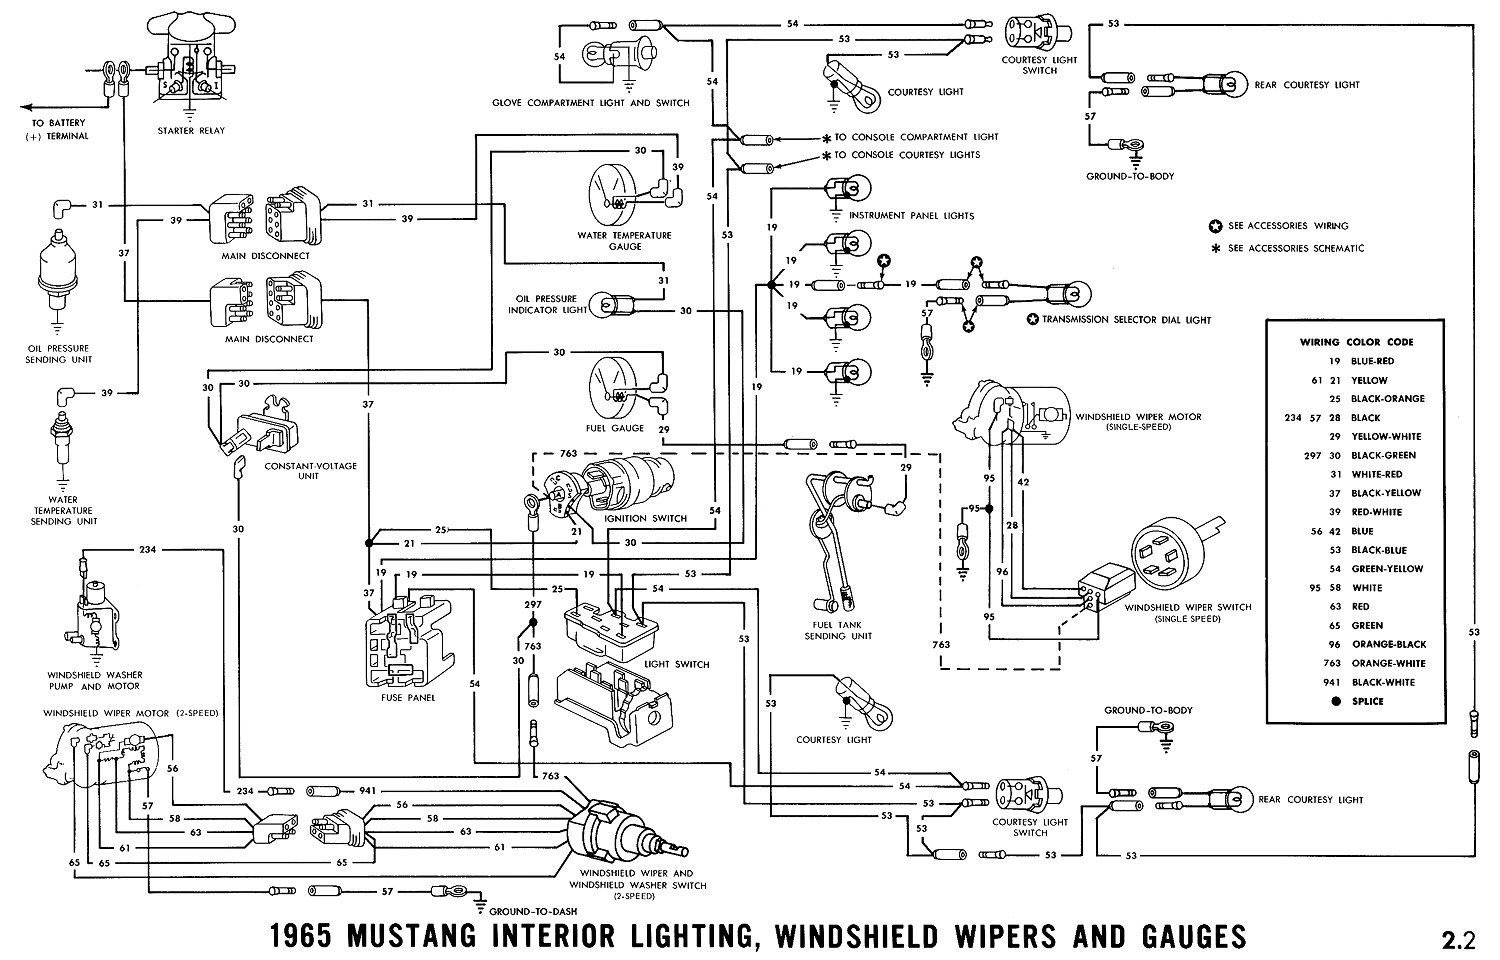 Mustang Electrical Diagram | Wiring Diagram on transformer diagrams, pinout diagrams, hvac diagrams, engine diagrams, smart car diagrams, electrical diagrams, friendship bracelet diagrams, sincgars radio configurations diagrams, motor diagrams, switch diagrams, internet of things diagrams, troubleshooting diagrams, lighting diagrams, gmc fuse box diagrams, honda motorcycle repair diagrams, series and parallel circuits diagrams, battery diagrams, led circuit diagrams, electronic circuit diagrams,